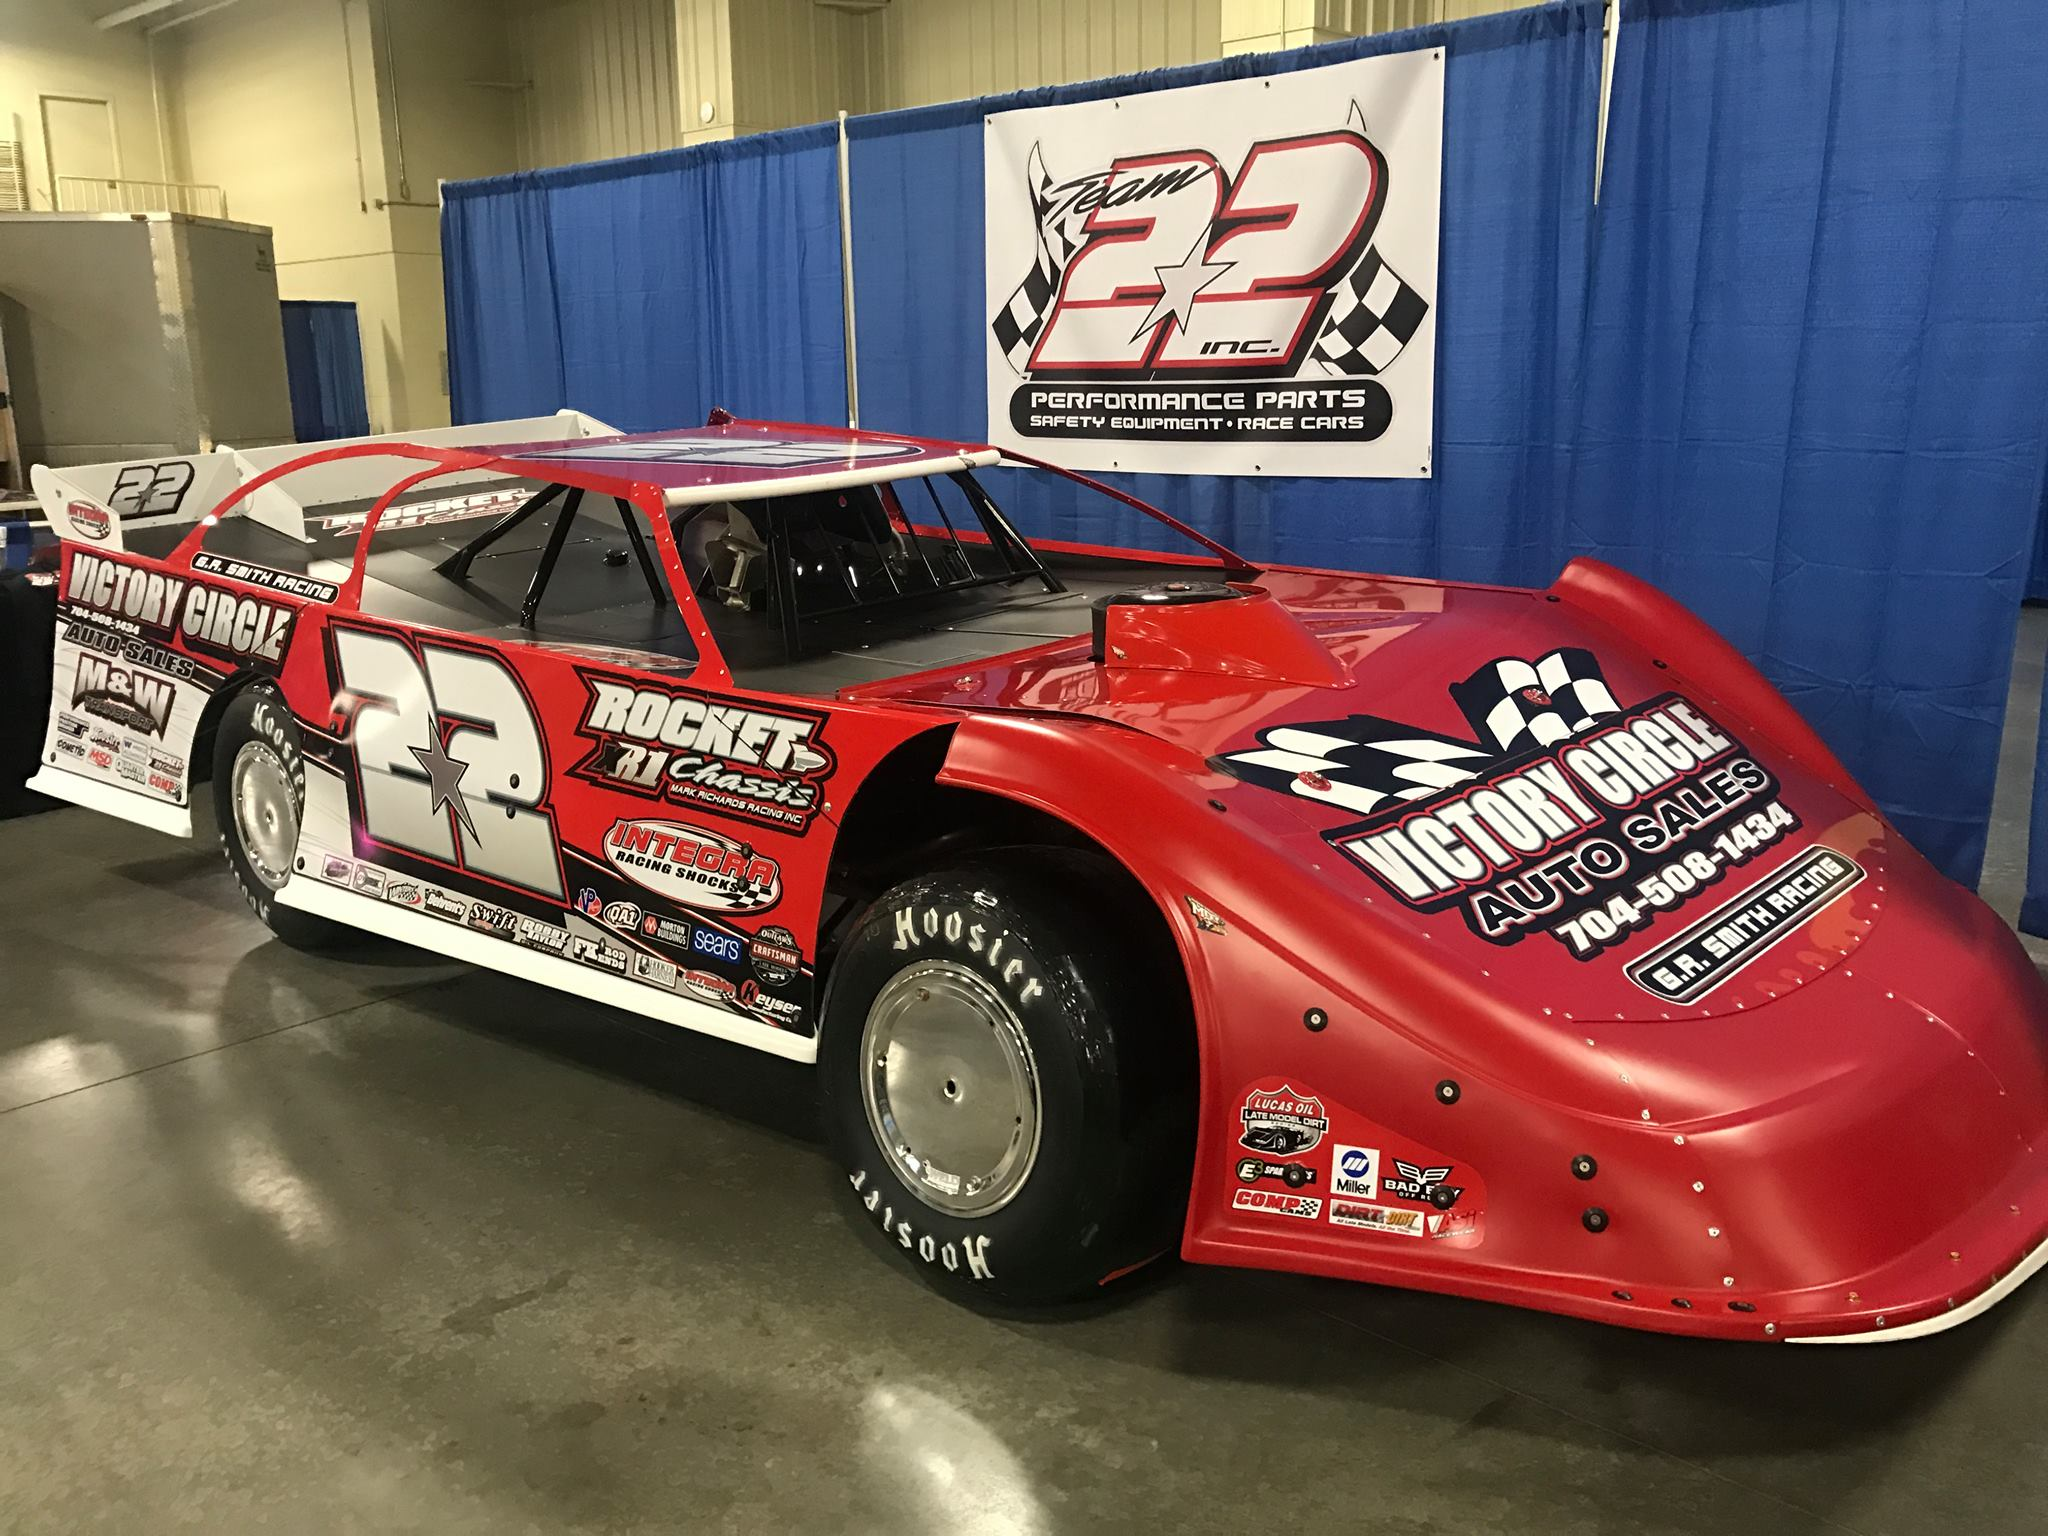 GR Smith Motorsports set for national dirt late model tour